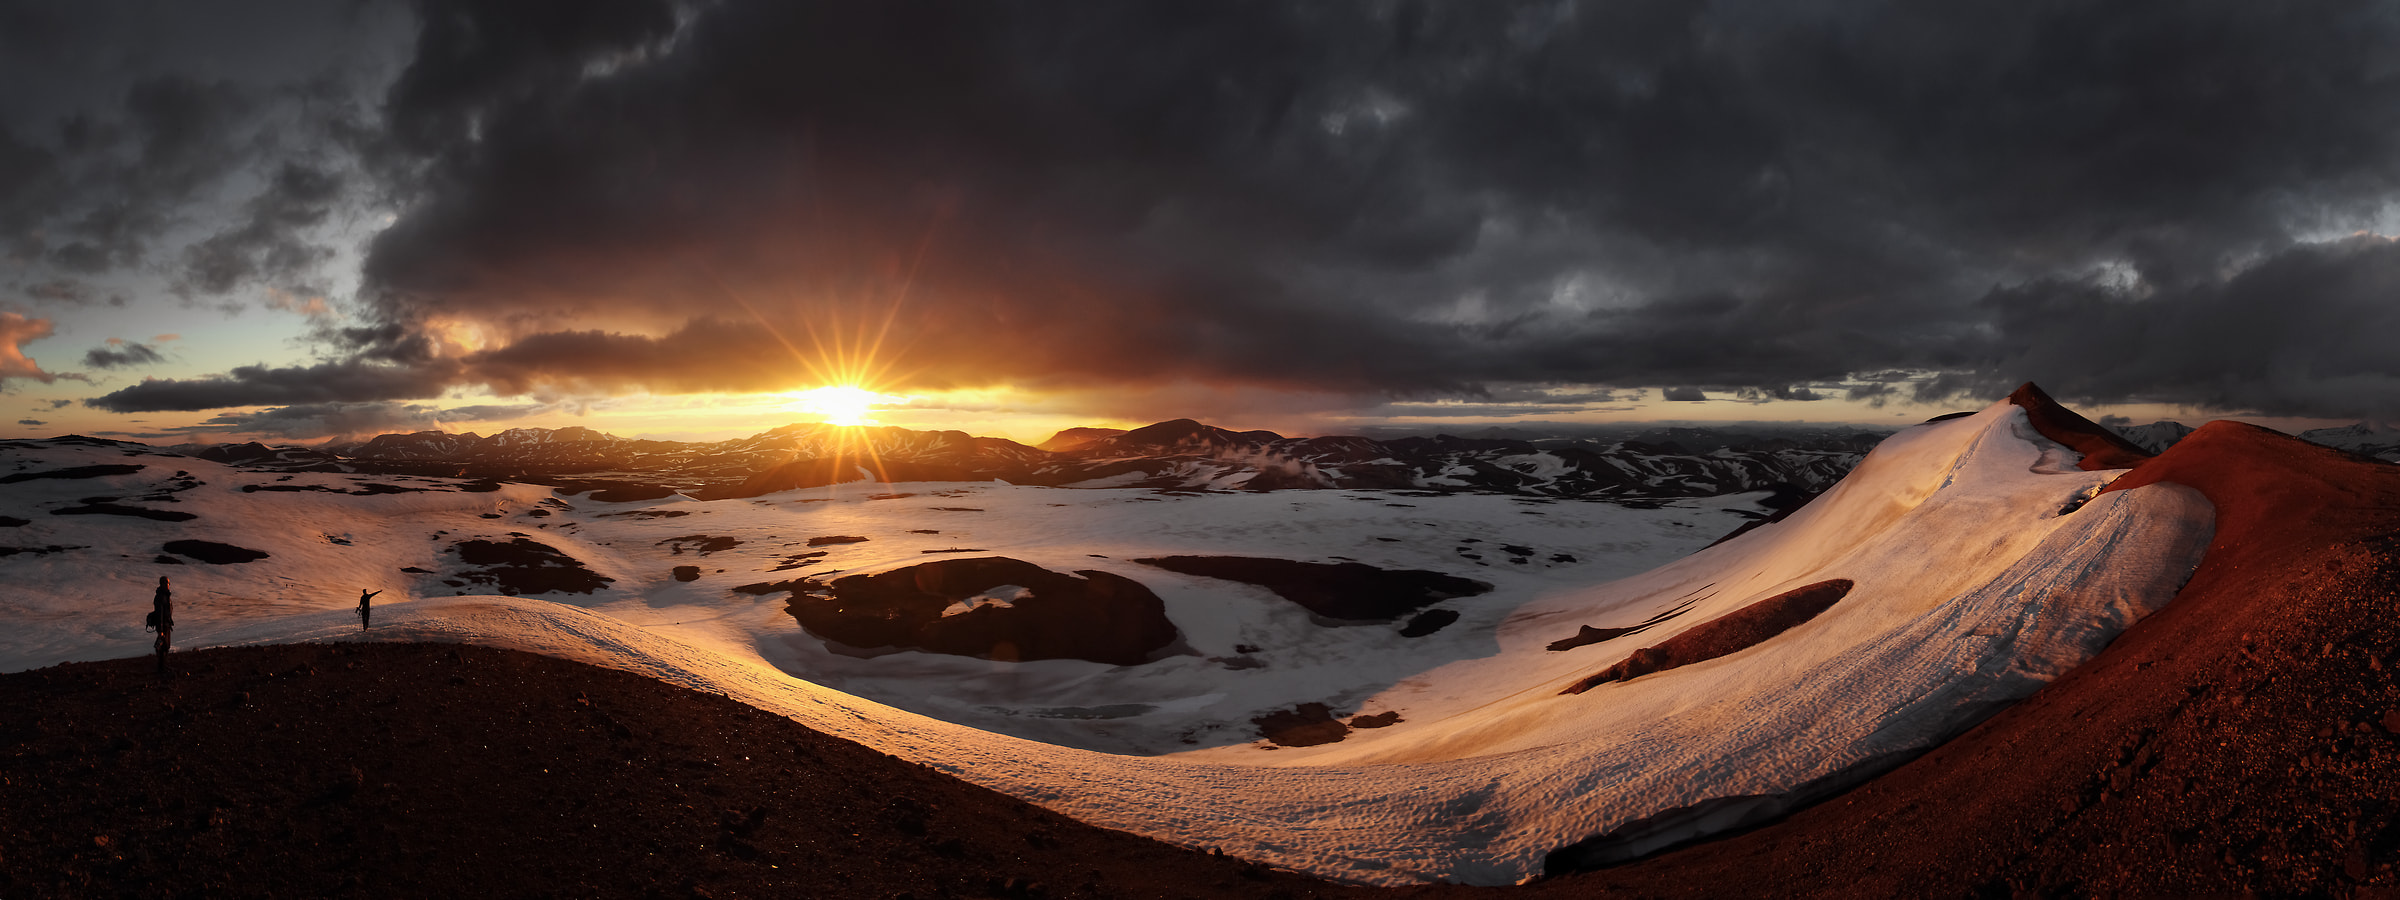 96 megapixels! A very high resolution, large-format VAST photo of sunset and a mountain landscape; panorama photograph created by Alexandre Deschaumes in Hrafntinnusker, Iceland